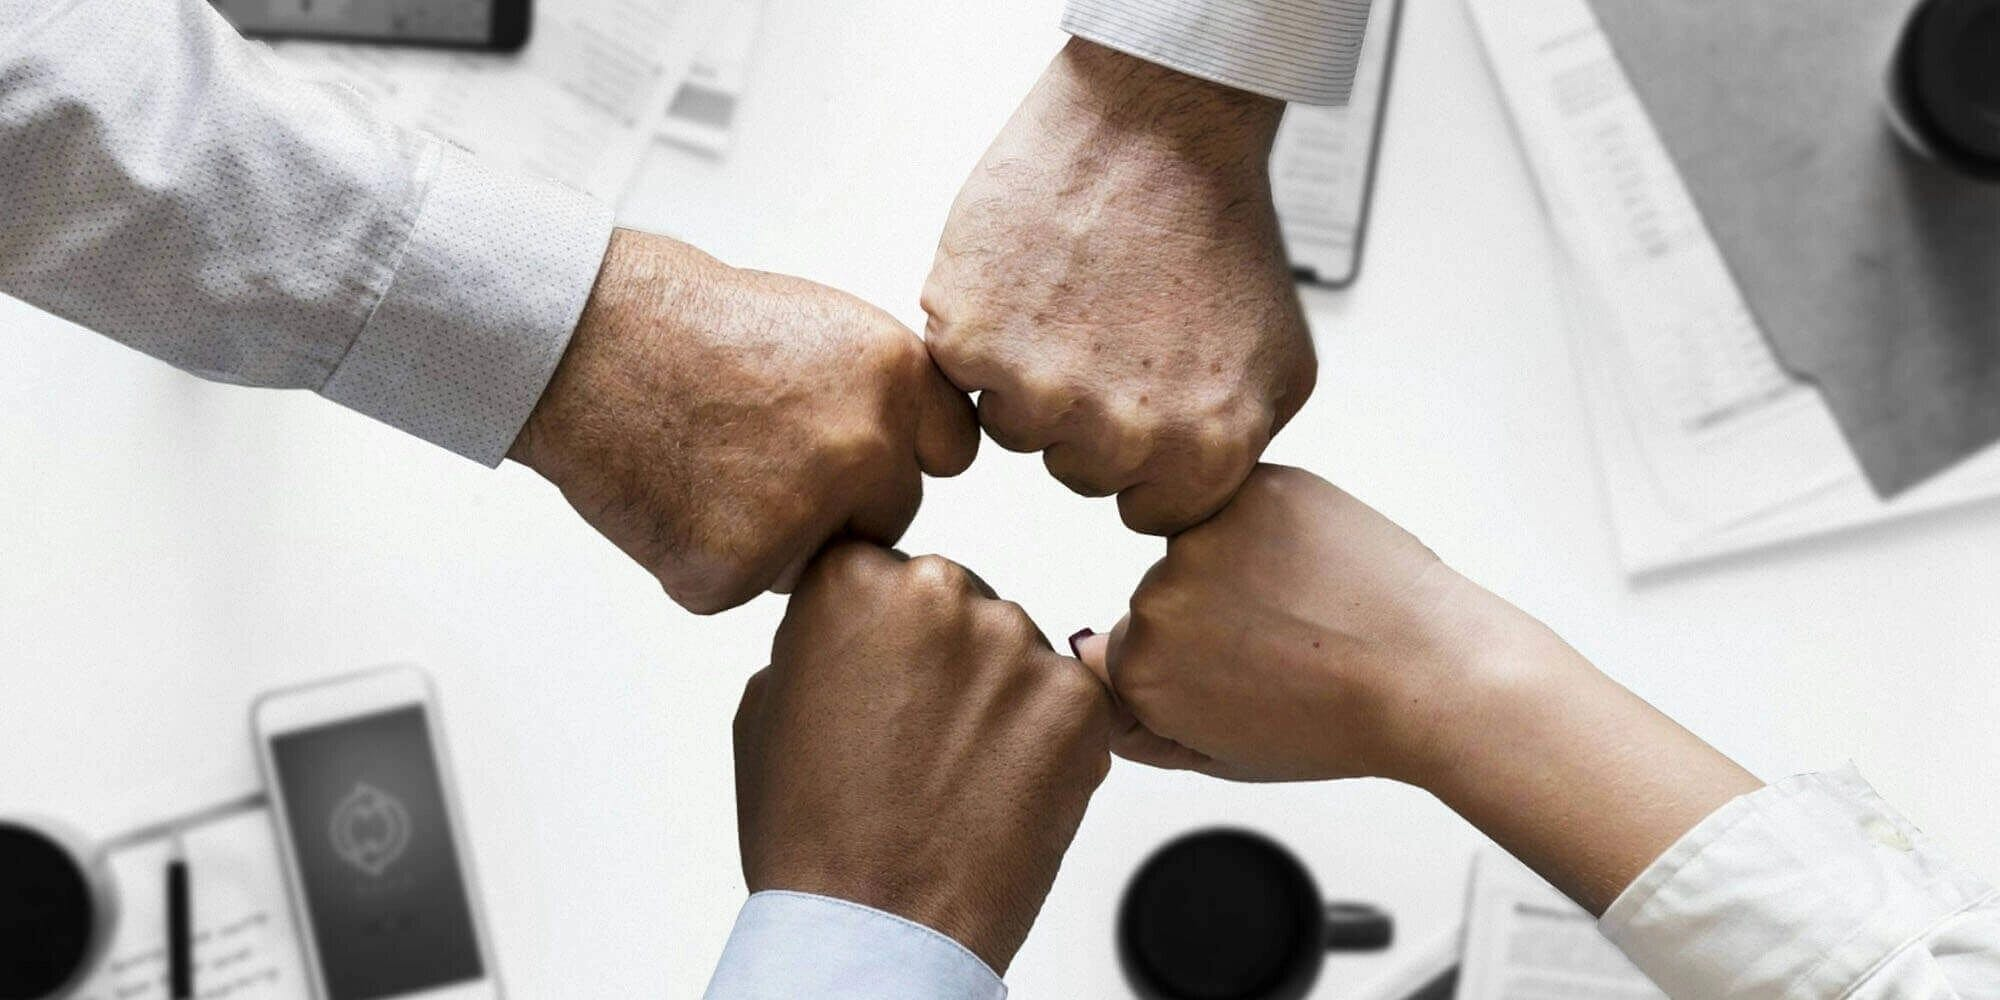 four fists of four people meeting representing camaraderie